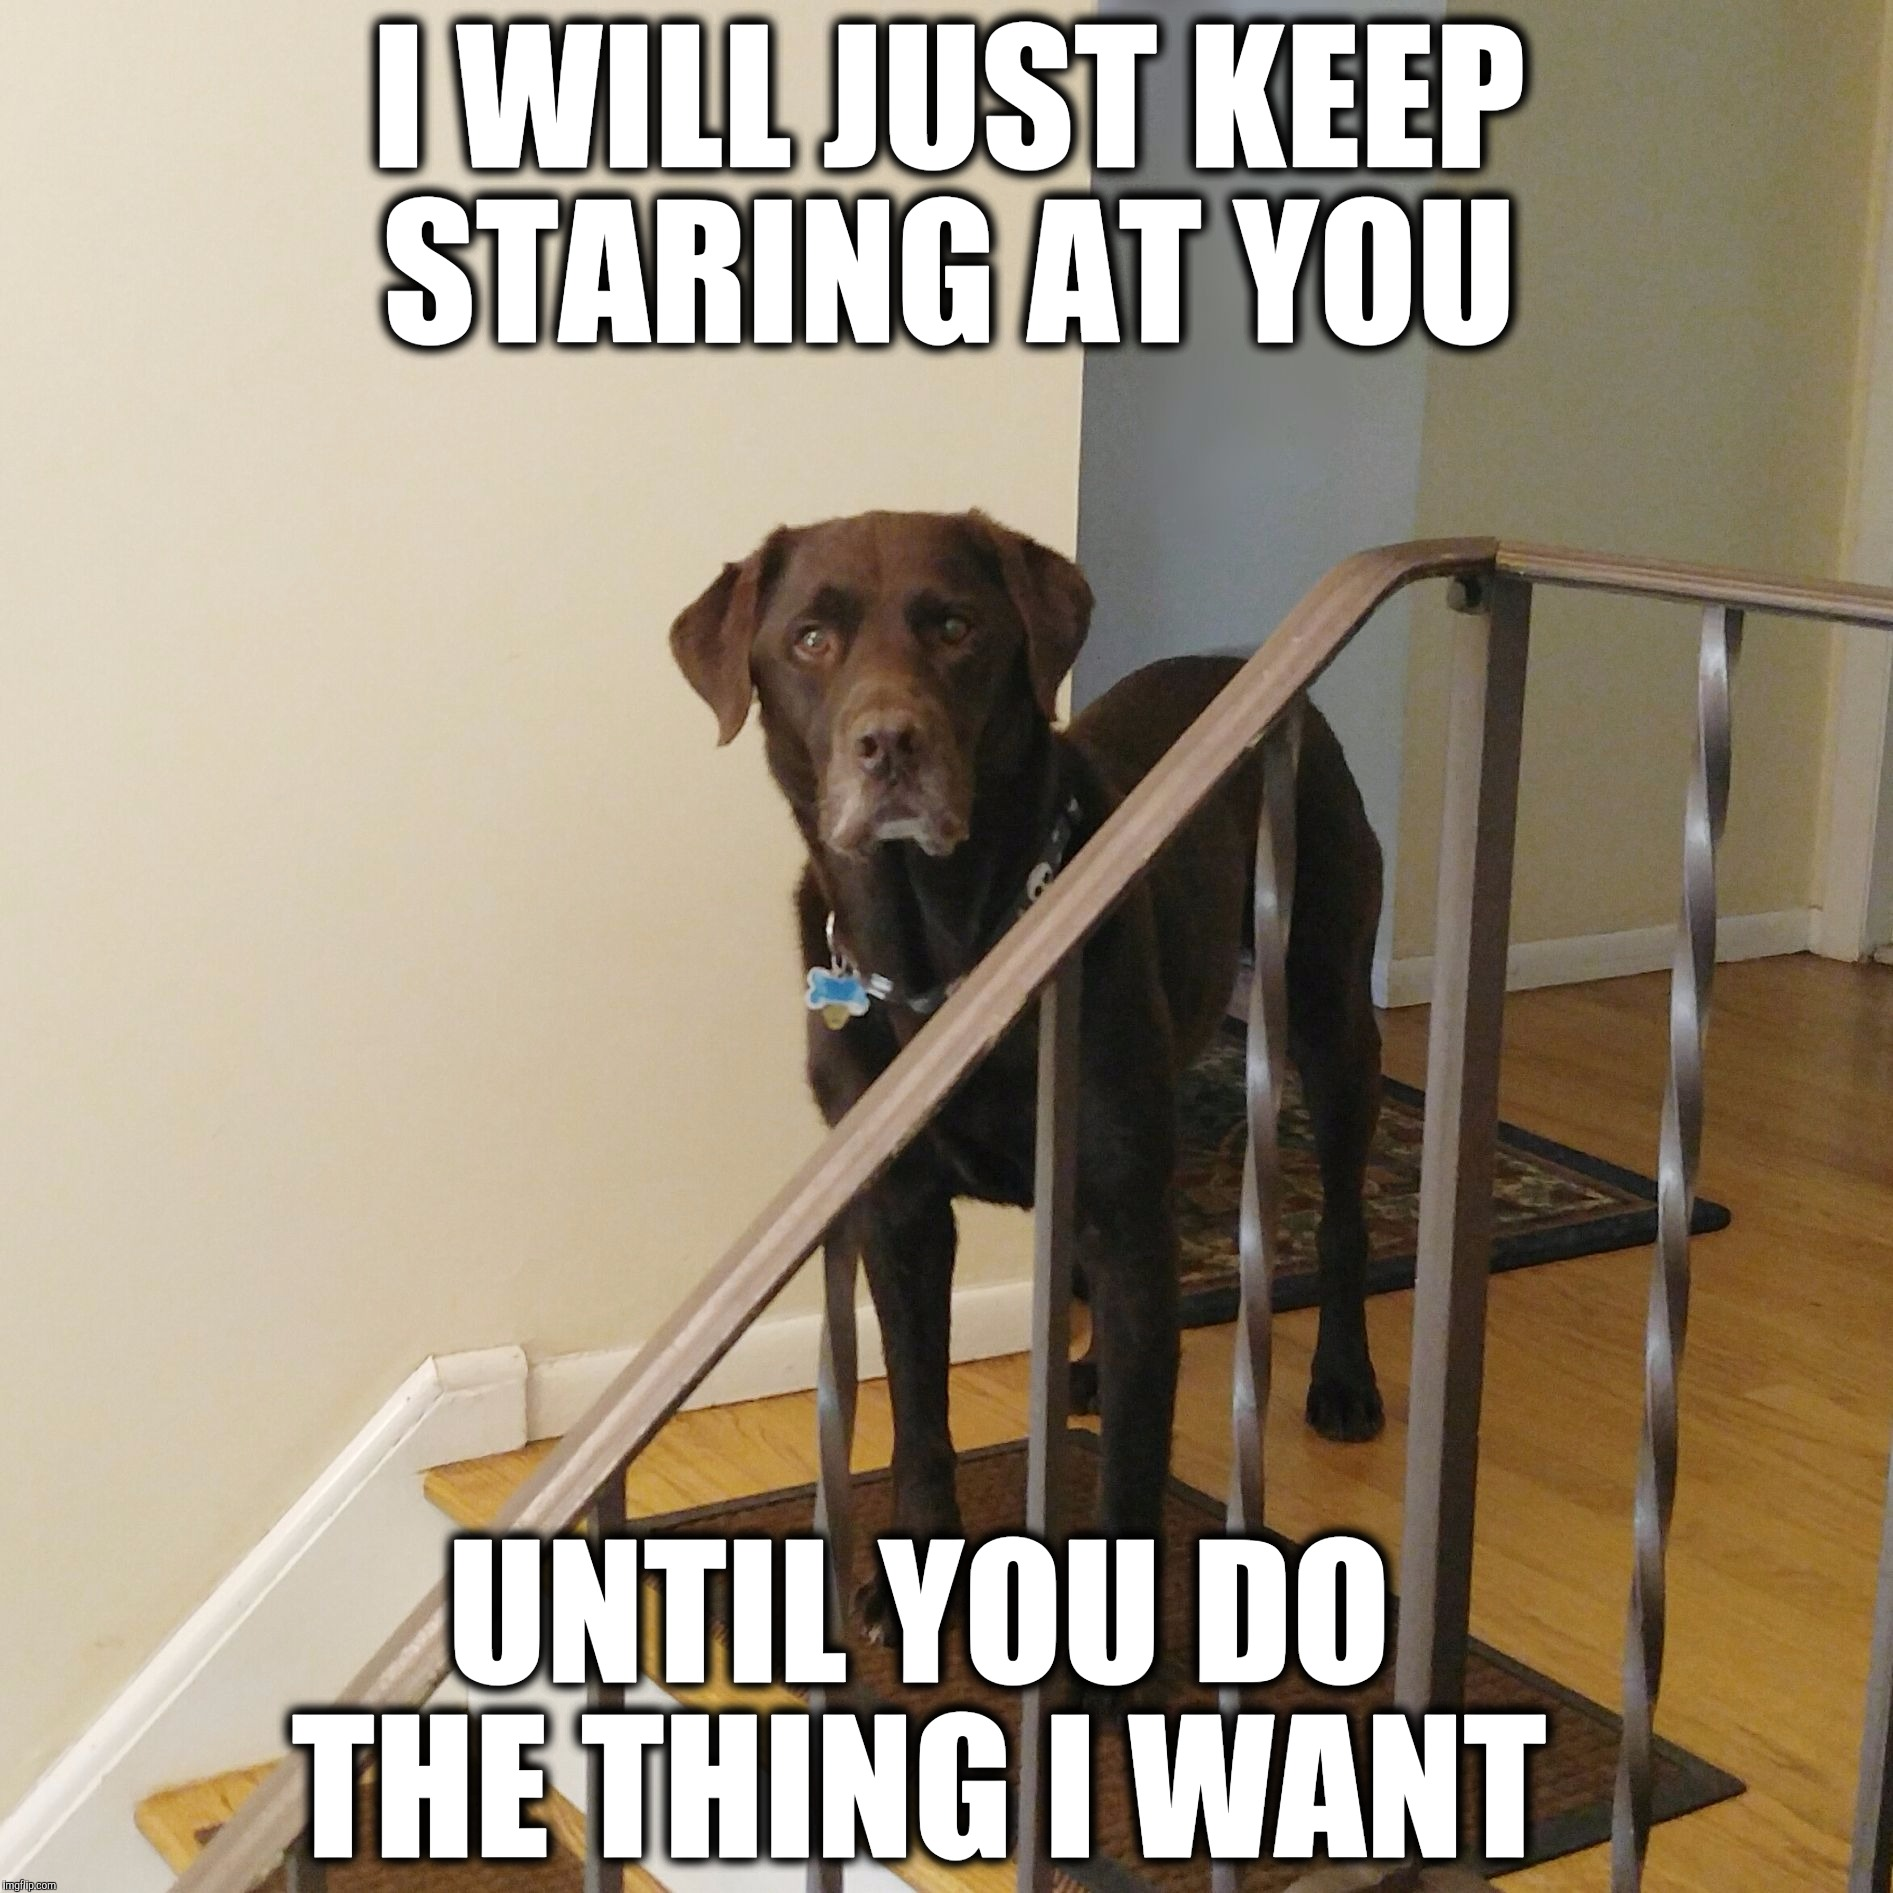 I will just keep staring at you until you do the thing I want  | I WILL JUST KEEP STARING AT YOU UNTIL YOU DO THE THING I WANT | image tagged in chuckie the chocolate lab,funny,funny dog memes,funny memes,labrador,dogs | made w/ Imgflip meme maker